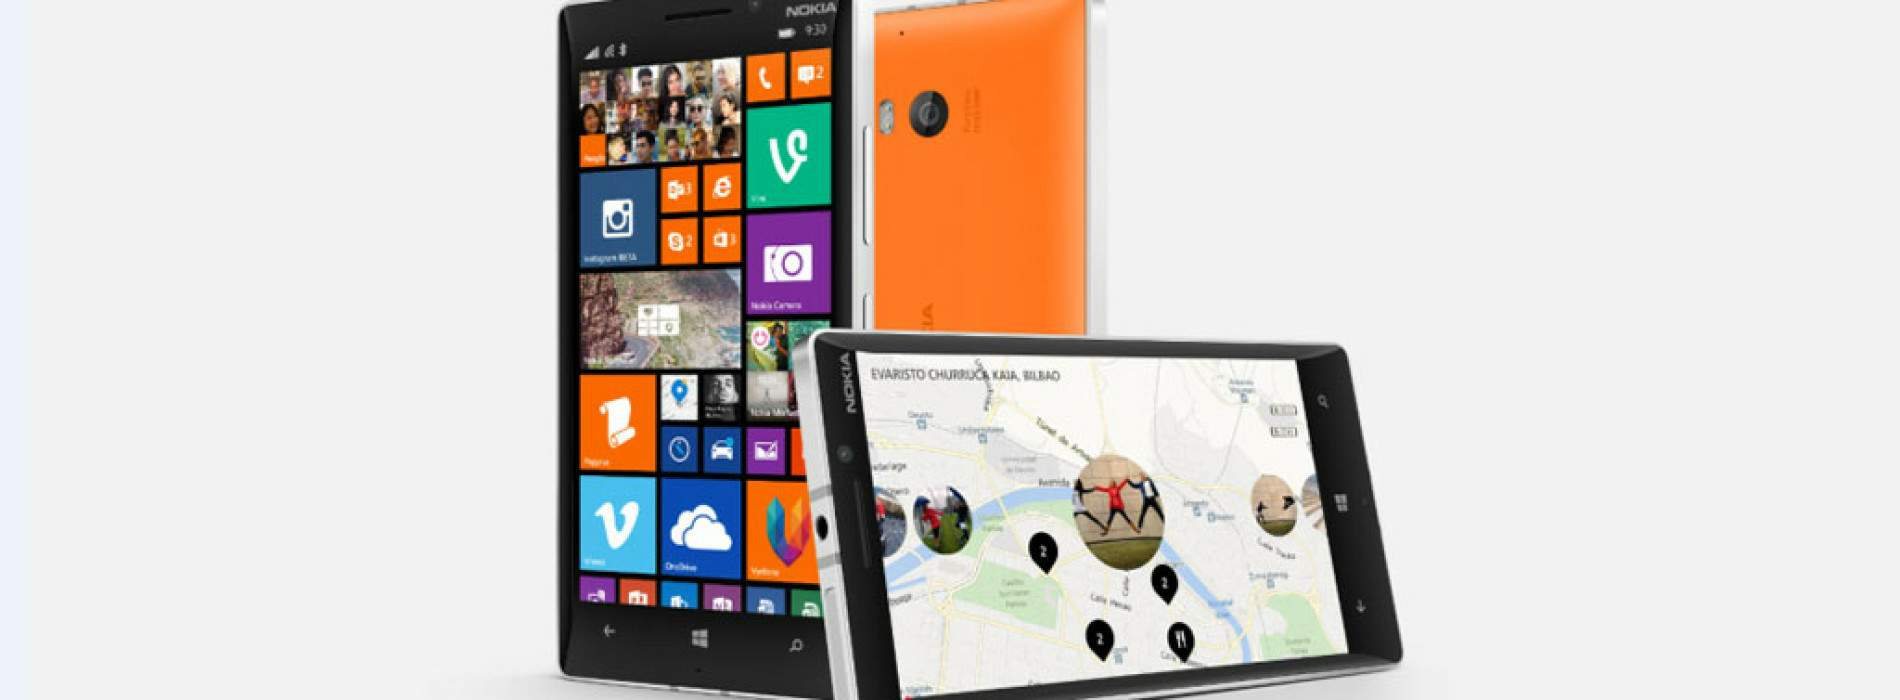 Nokia Lumia 930, 630 y 635 con Windows Phone 8.1